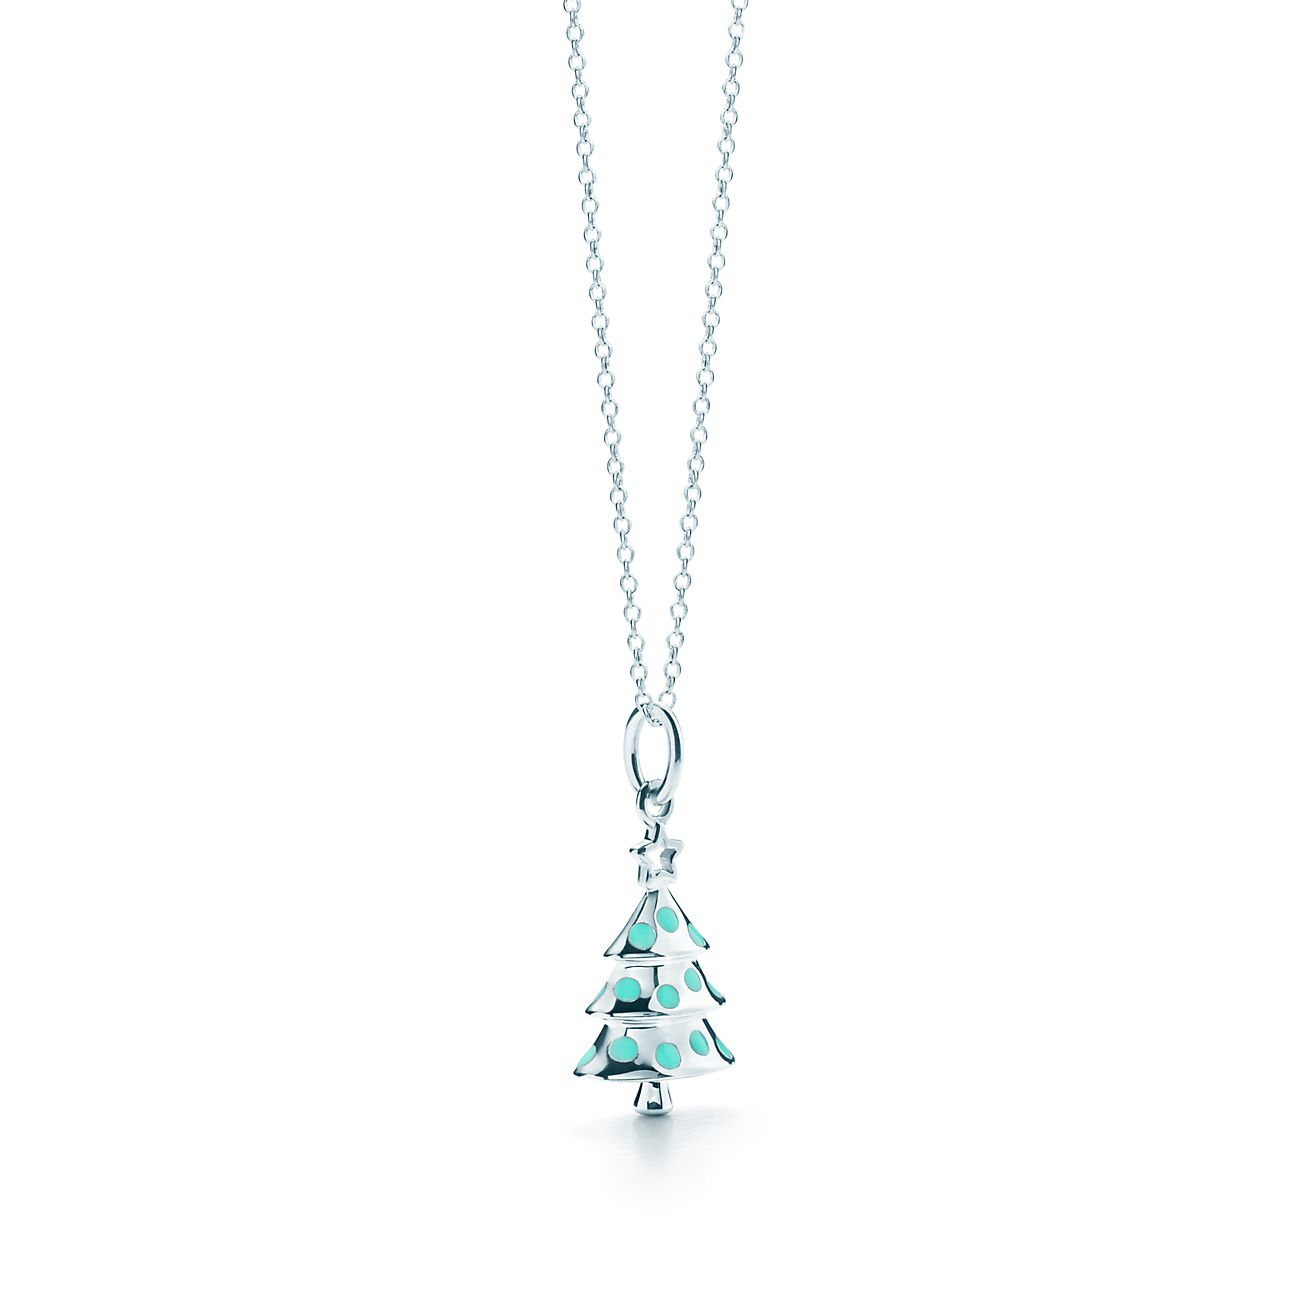 Christmas Tree charm in sterling silver with blue enamel finish on ...